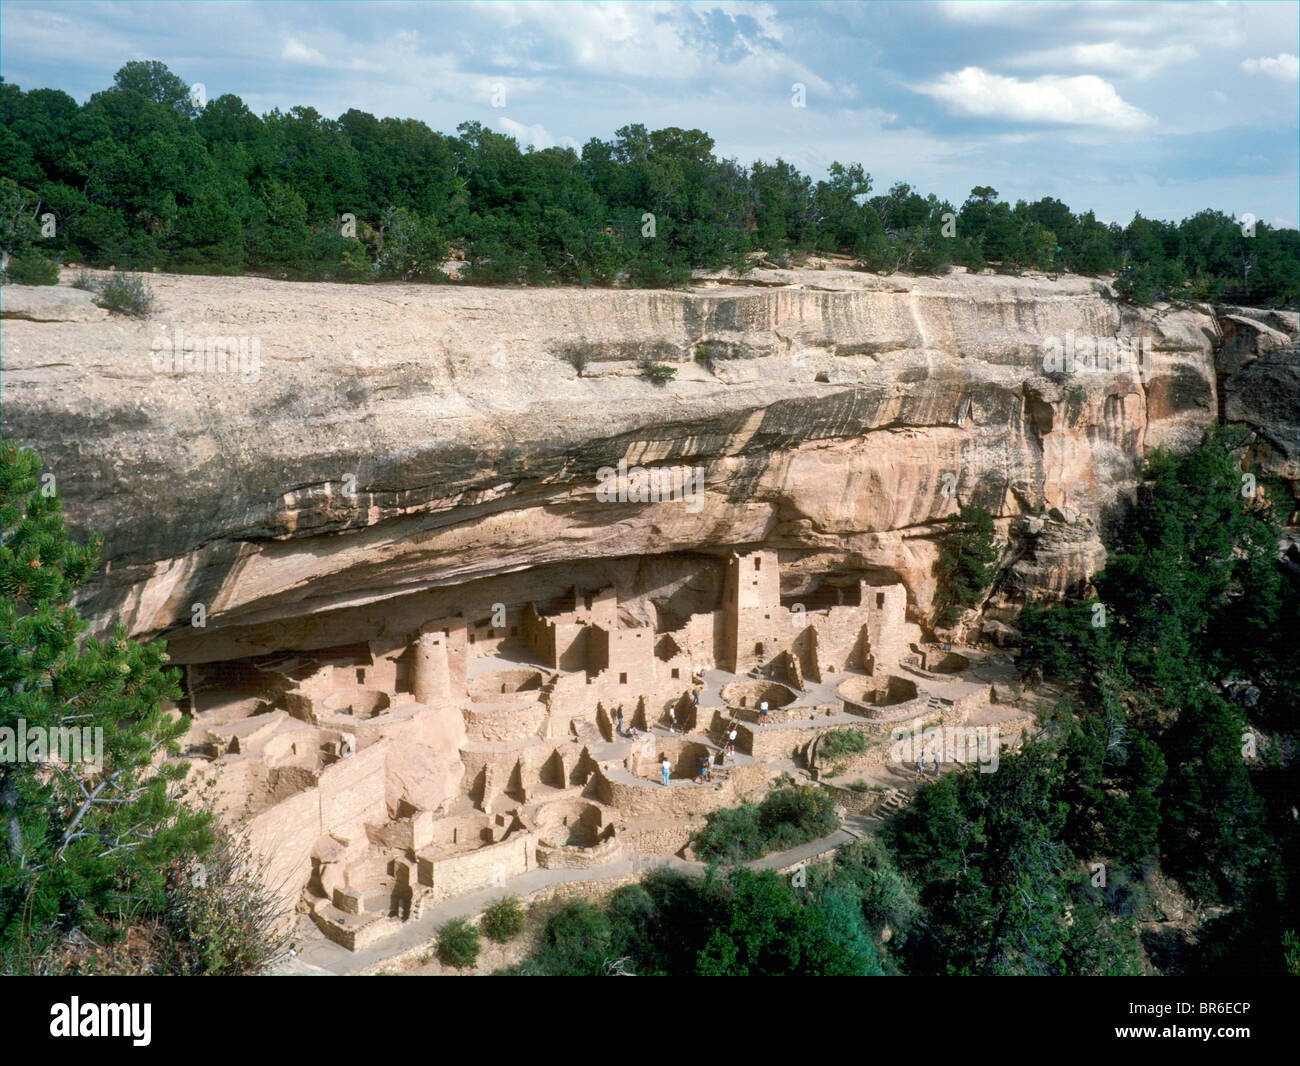 Cliff Palace, Anasazi Ruins, Mesa Verde National Park, Cortez, Colorado, USA - Stock Image